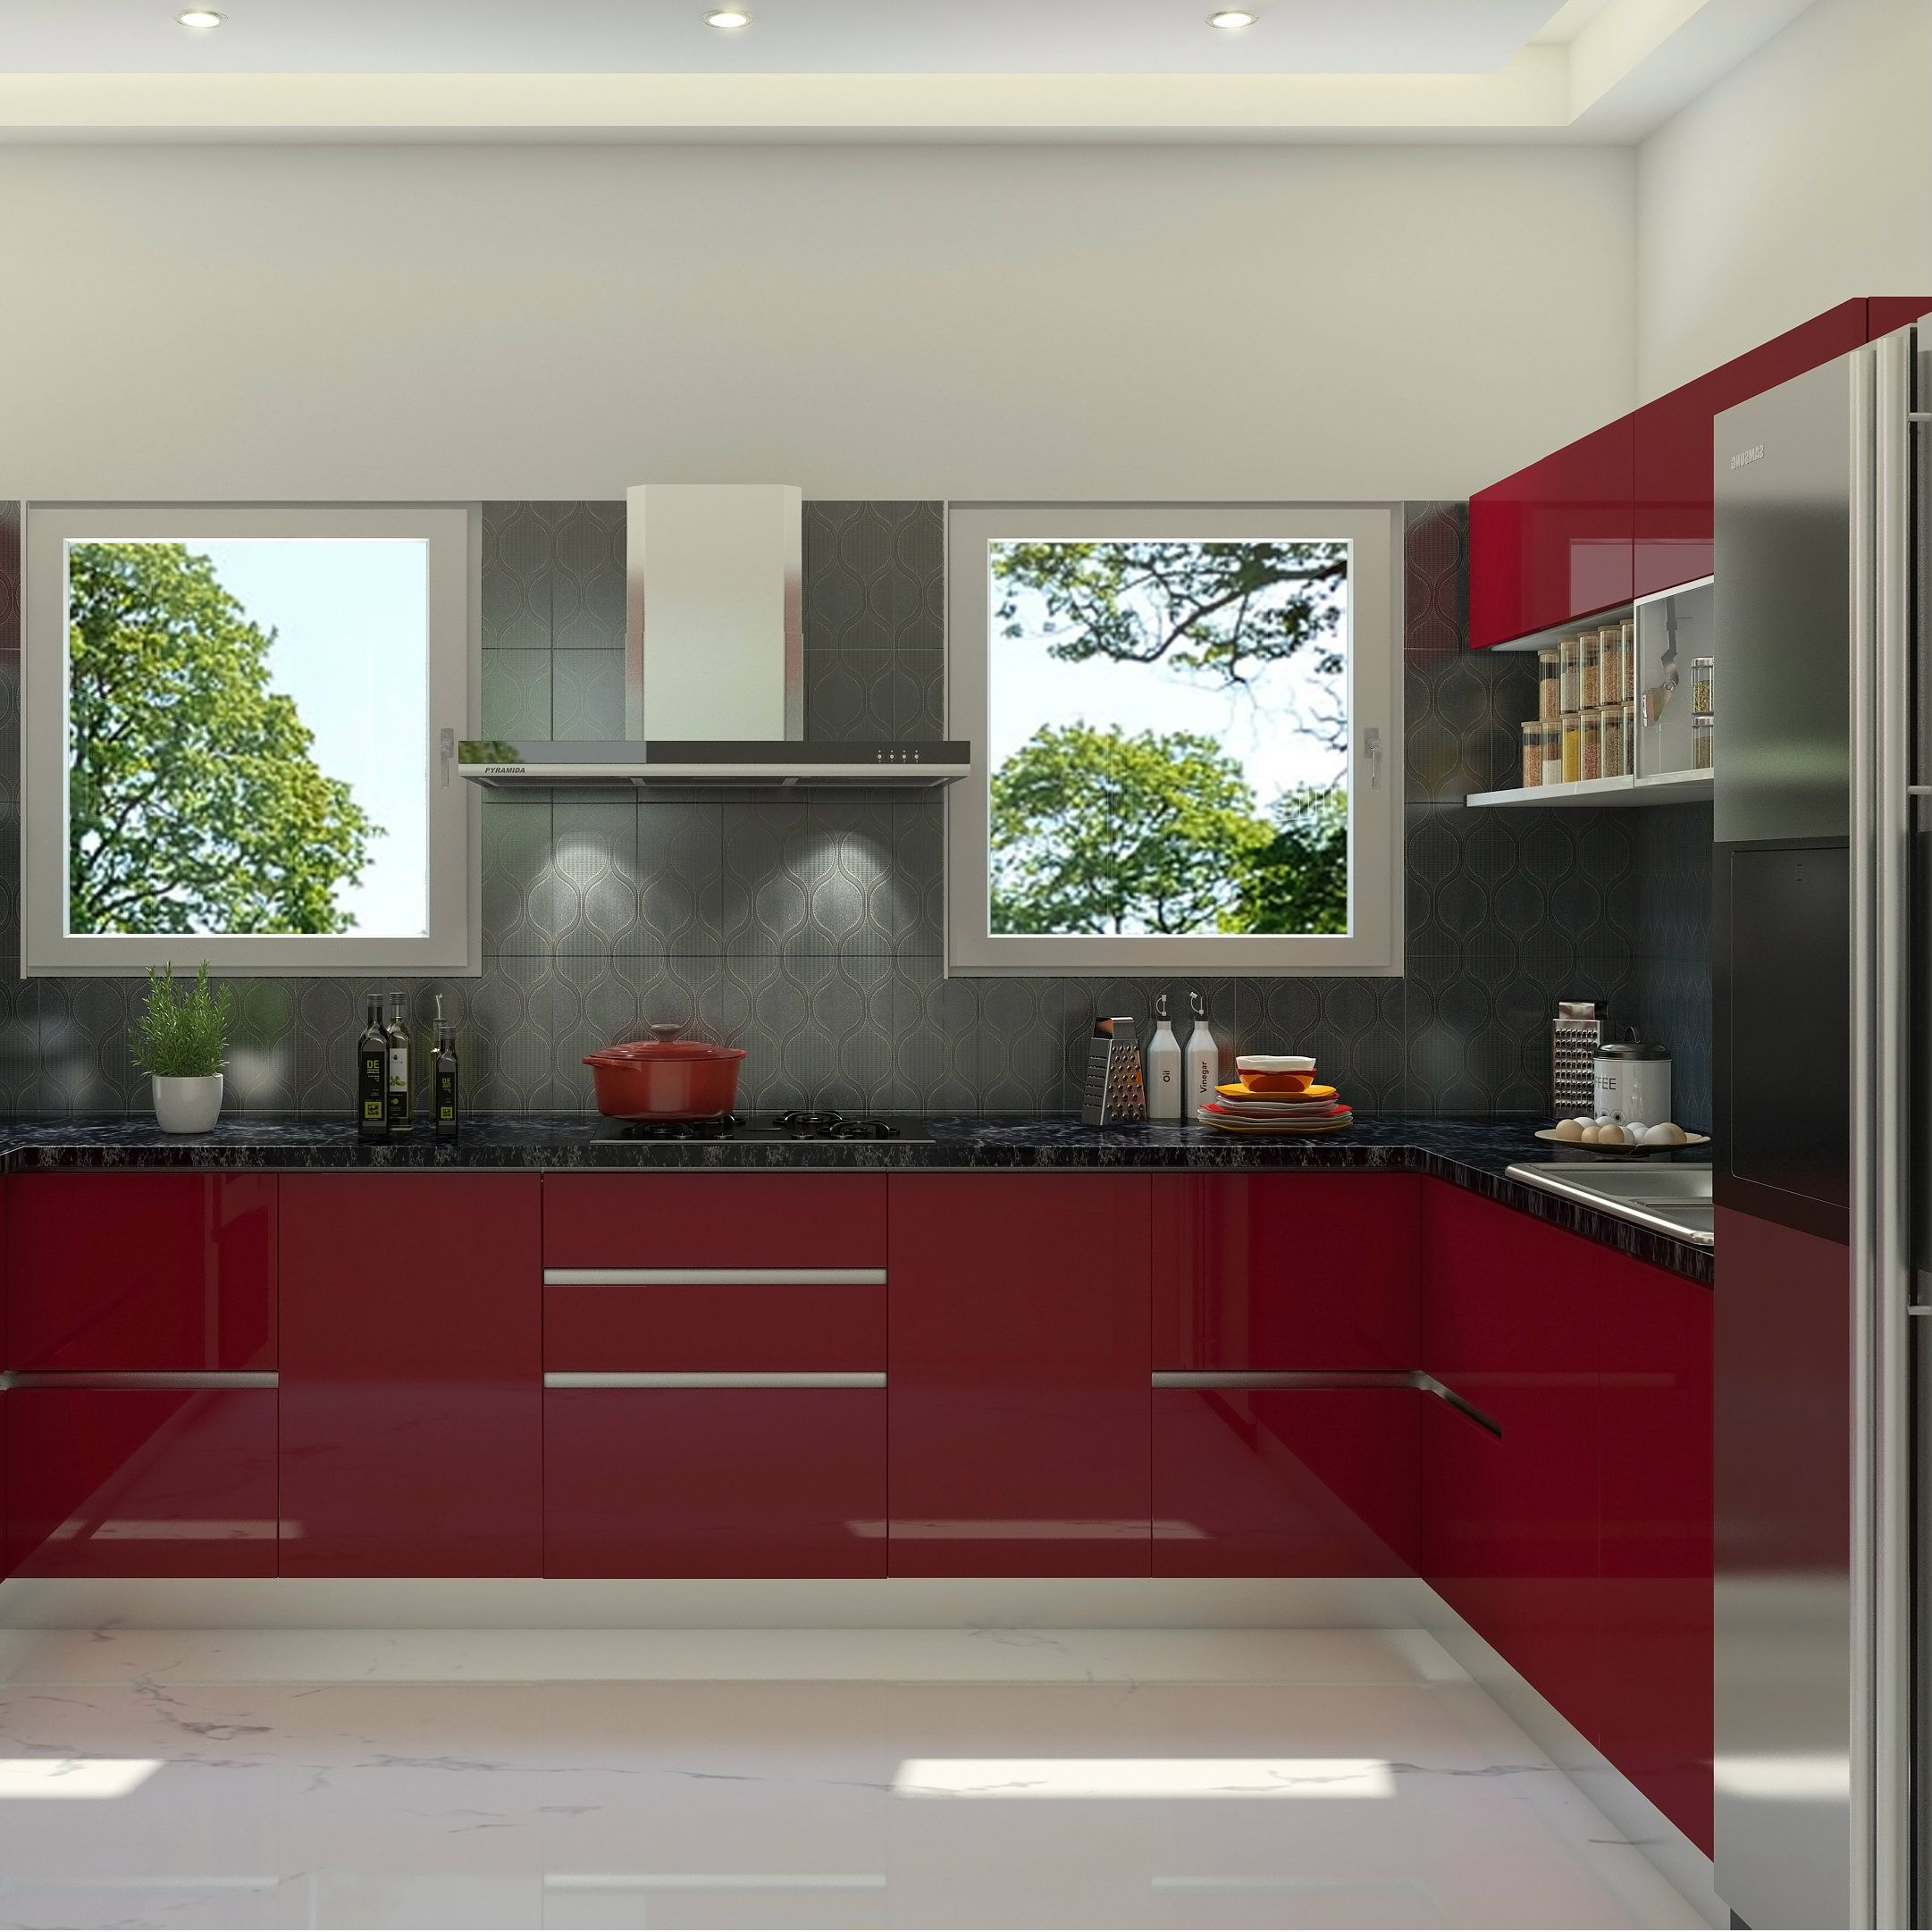 Glossy Kitchen Design Sleek Finish Red And Grey Combination